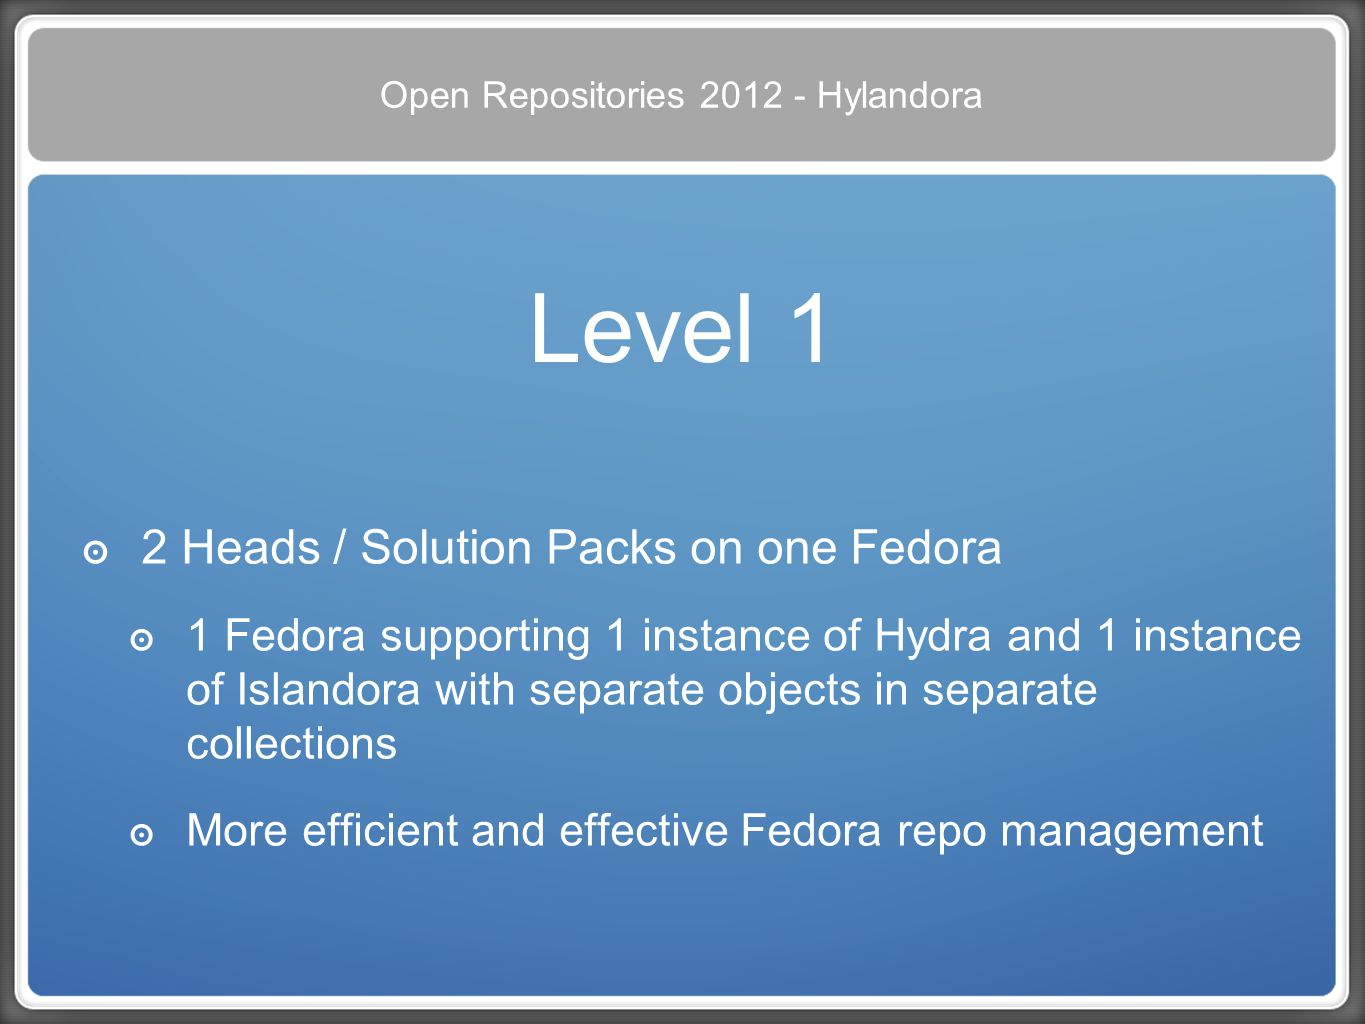 Open Repositories 2012 - Hylandora